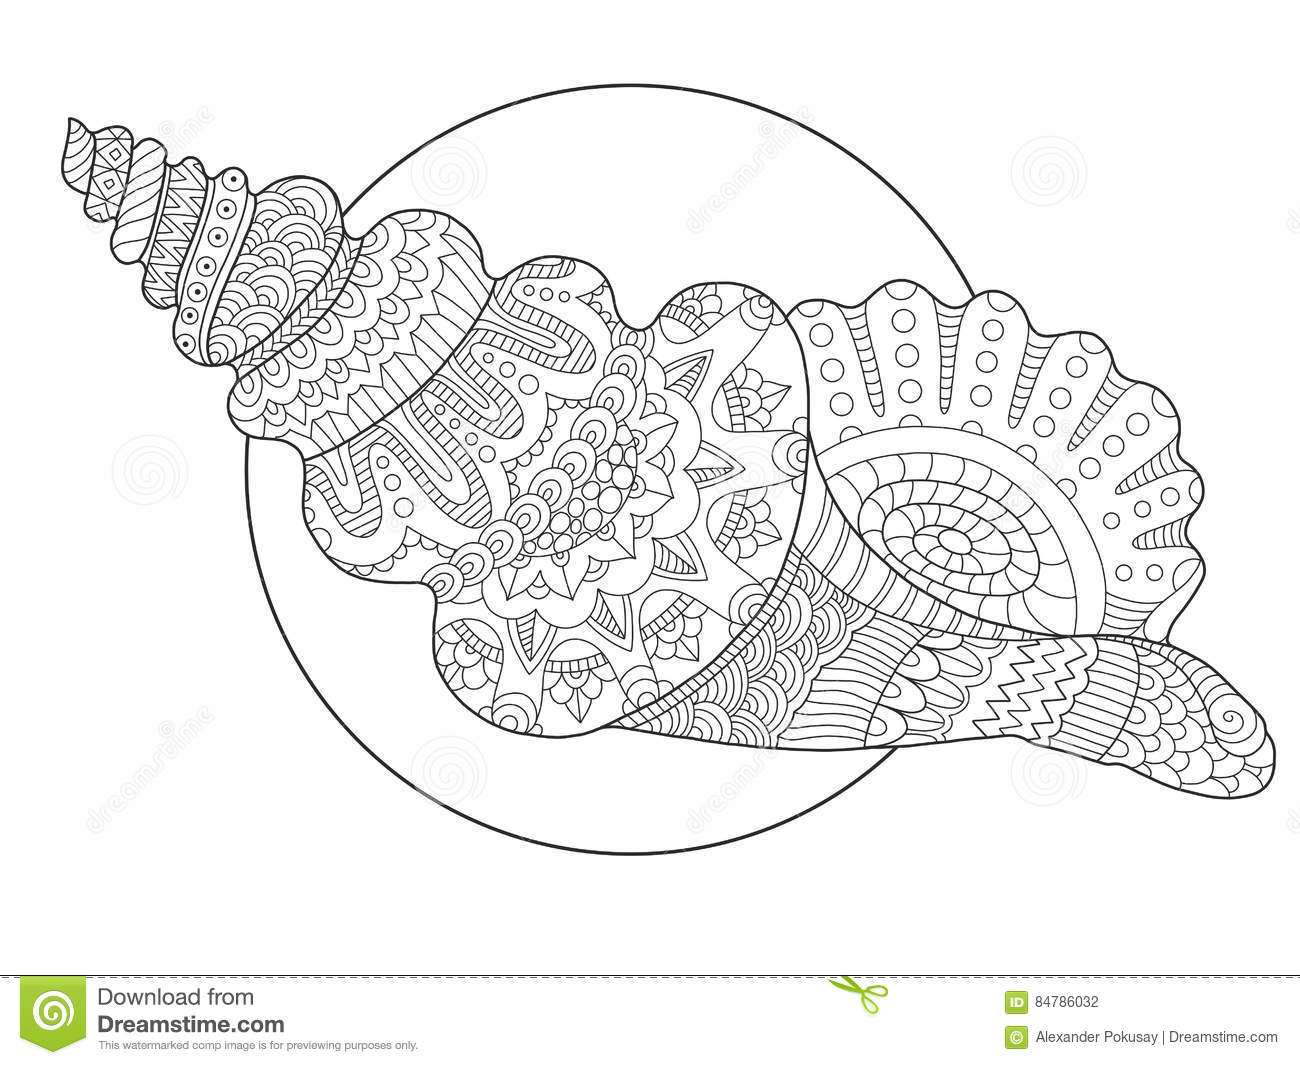 seashell coloring book vector illustration anti stress adult tattoo stencil black white lines lace pattern